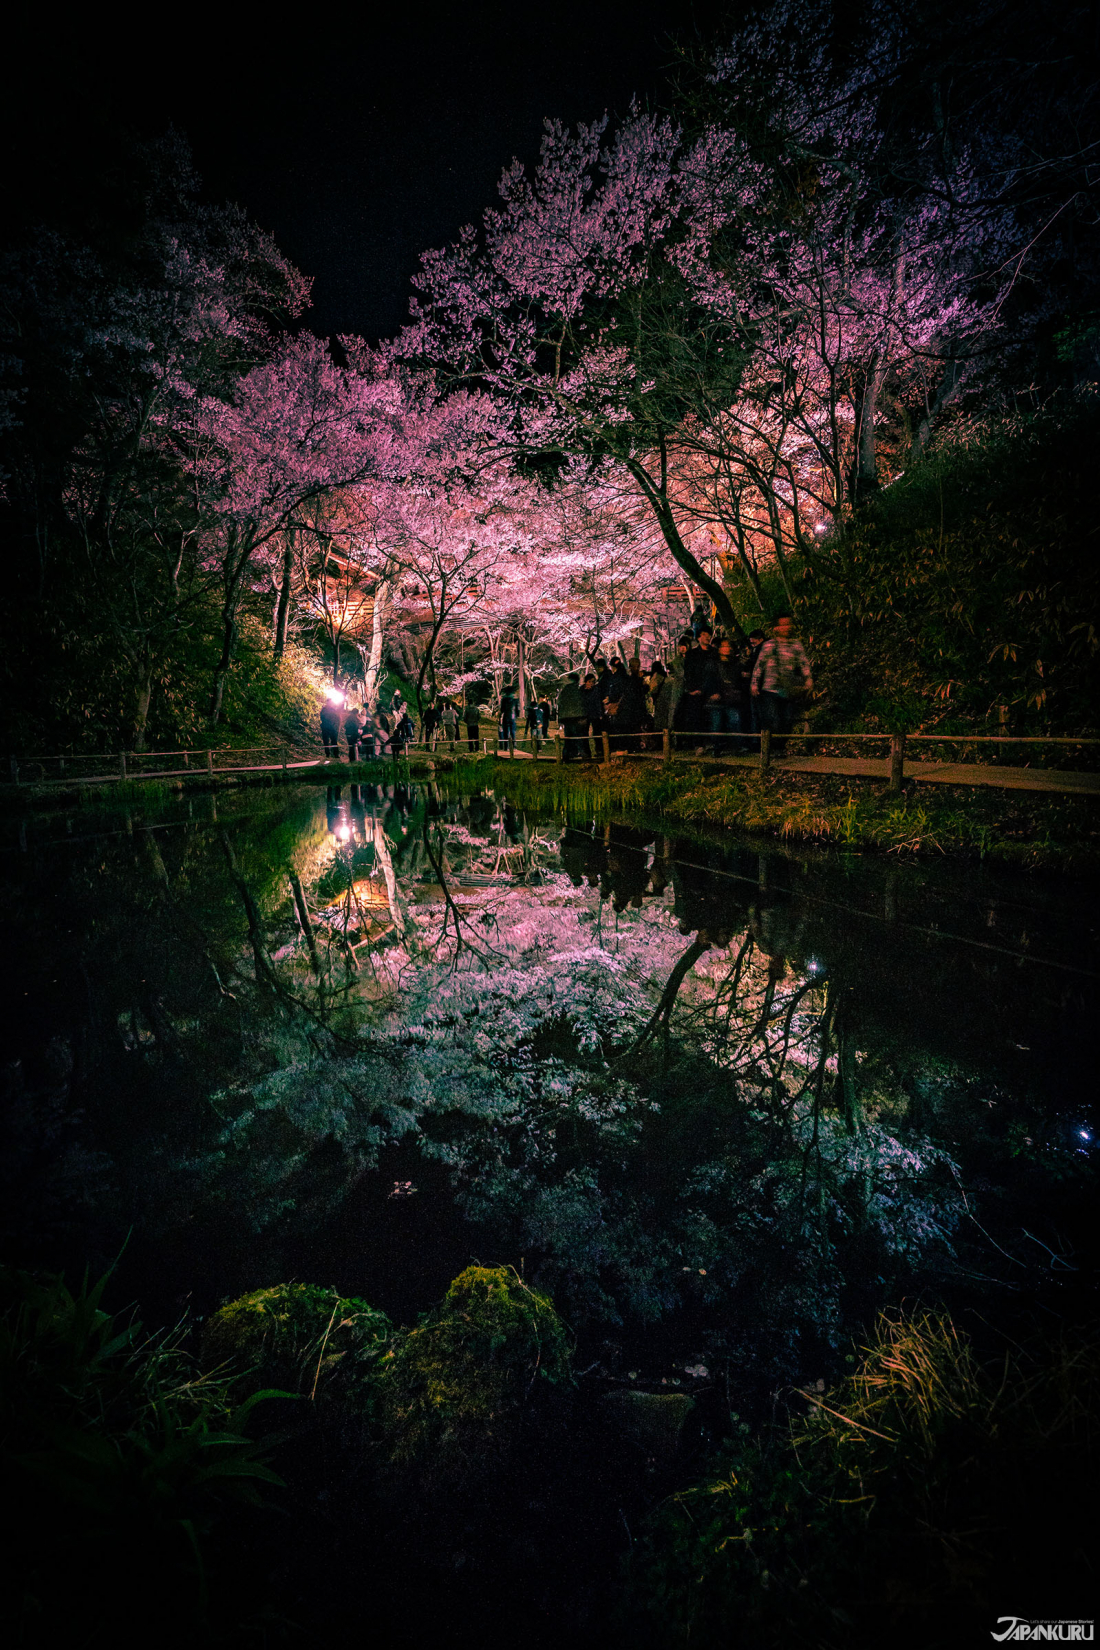 Takato Castle Site Park's Nighttime Cherry Blossoms